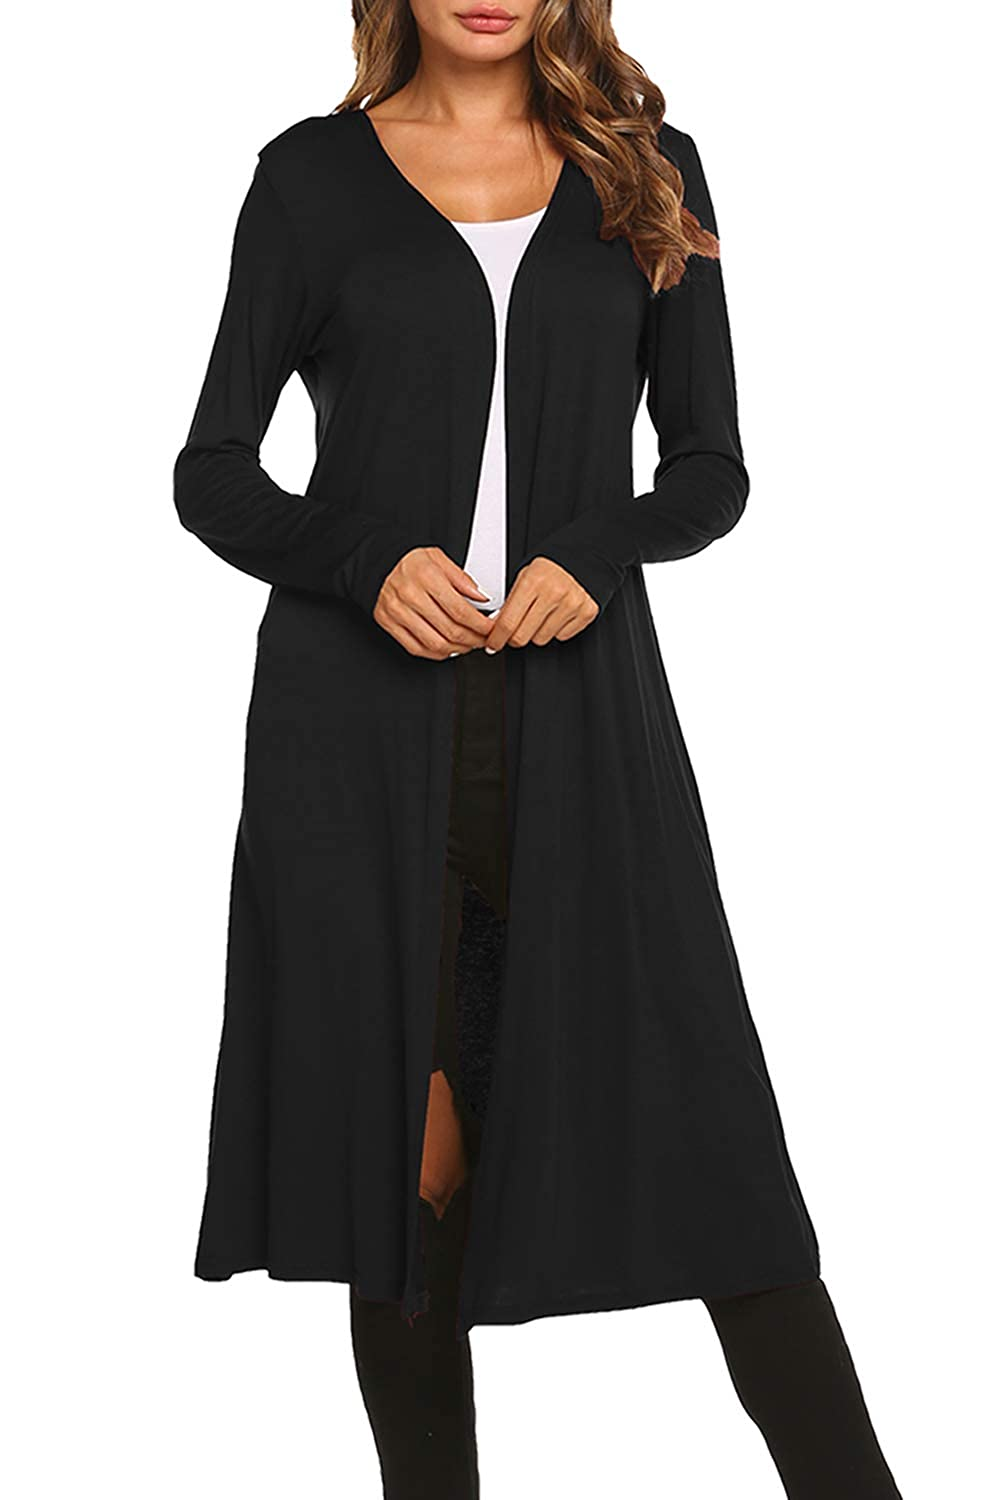 0323f85206 BLUETIME Women Plus Size Long Open Front Drape Maxi Cardigan Lightweight  Duster Long Sleeve Cardigan (S-4XL) at Amazon Women's Clothing store: